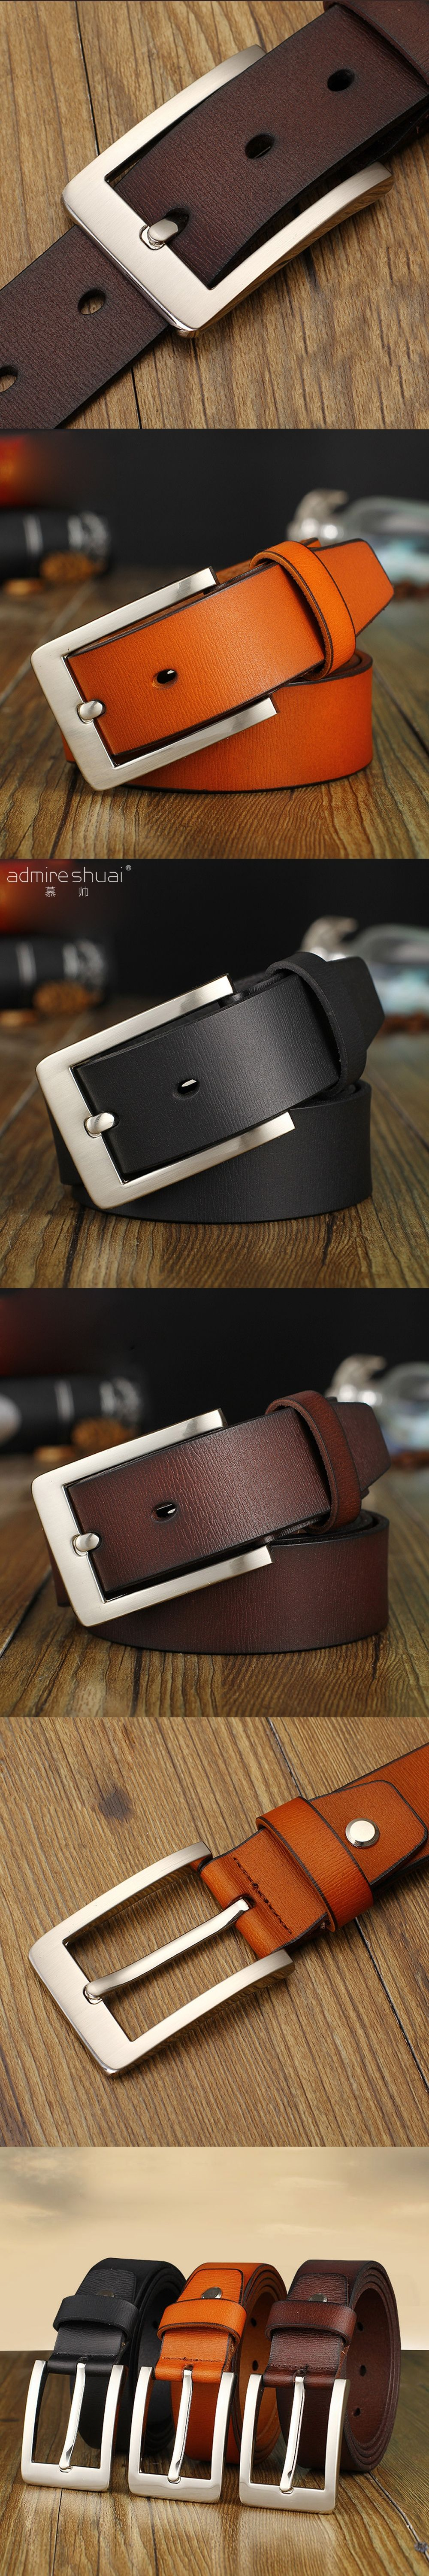 Luxury Retro Designer Belts Men High Quality Leather Belts For men Jeans  Pin Buckle Ceinture Homme 61a0ad41250